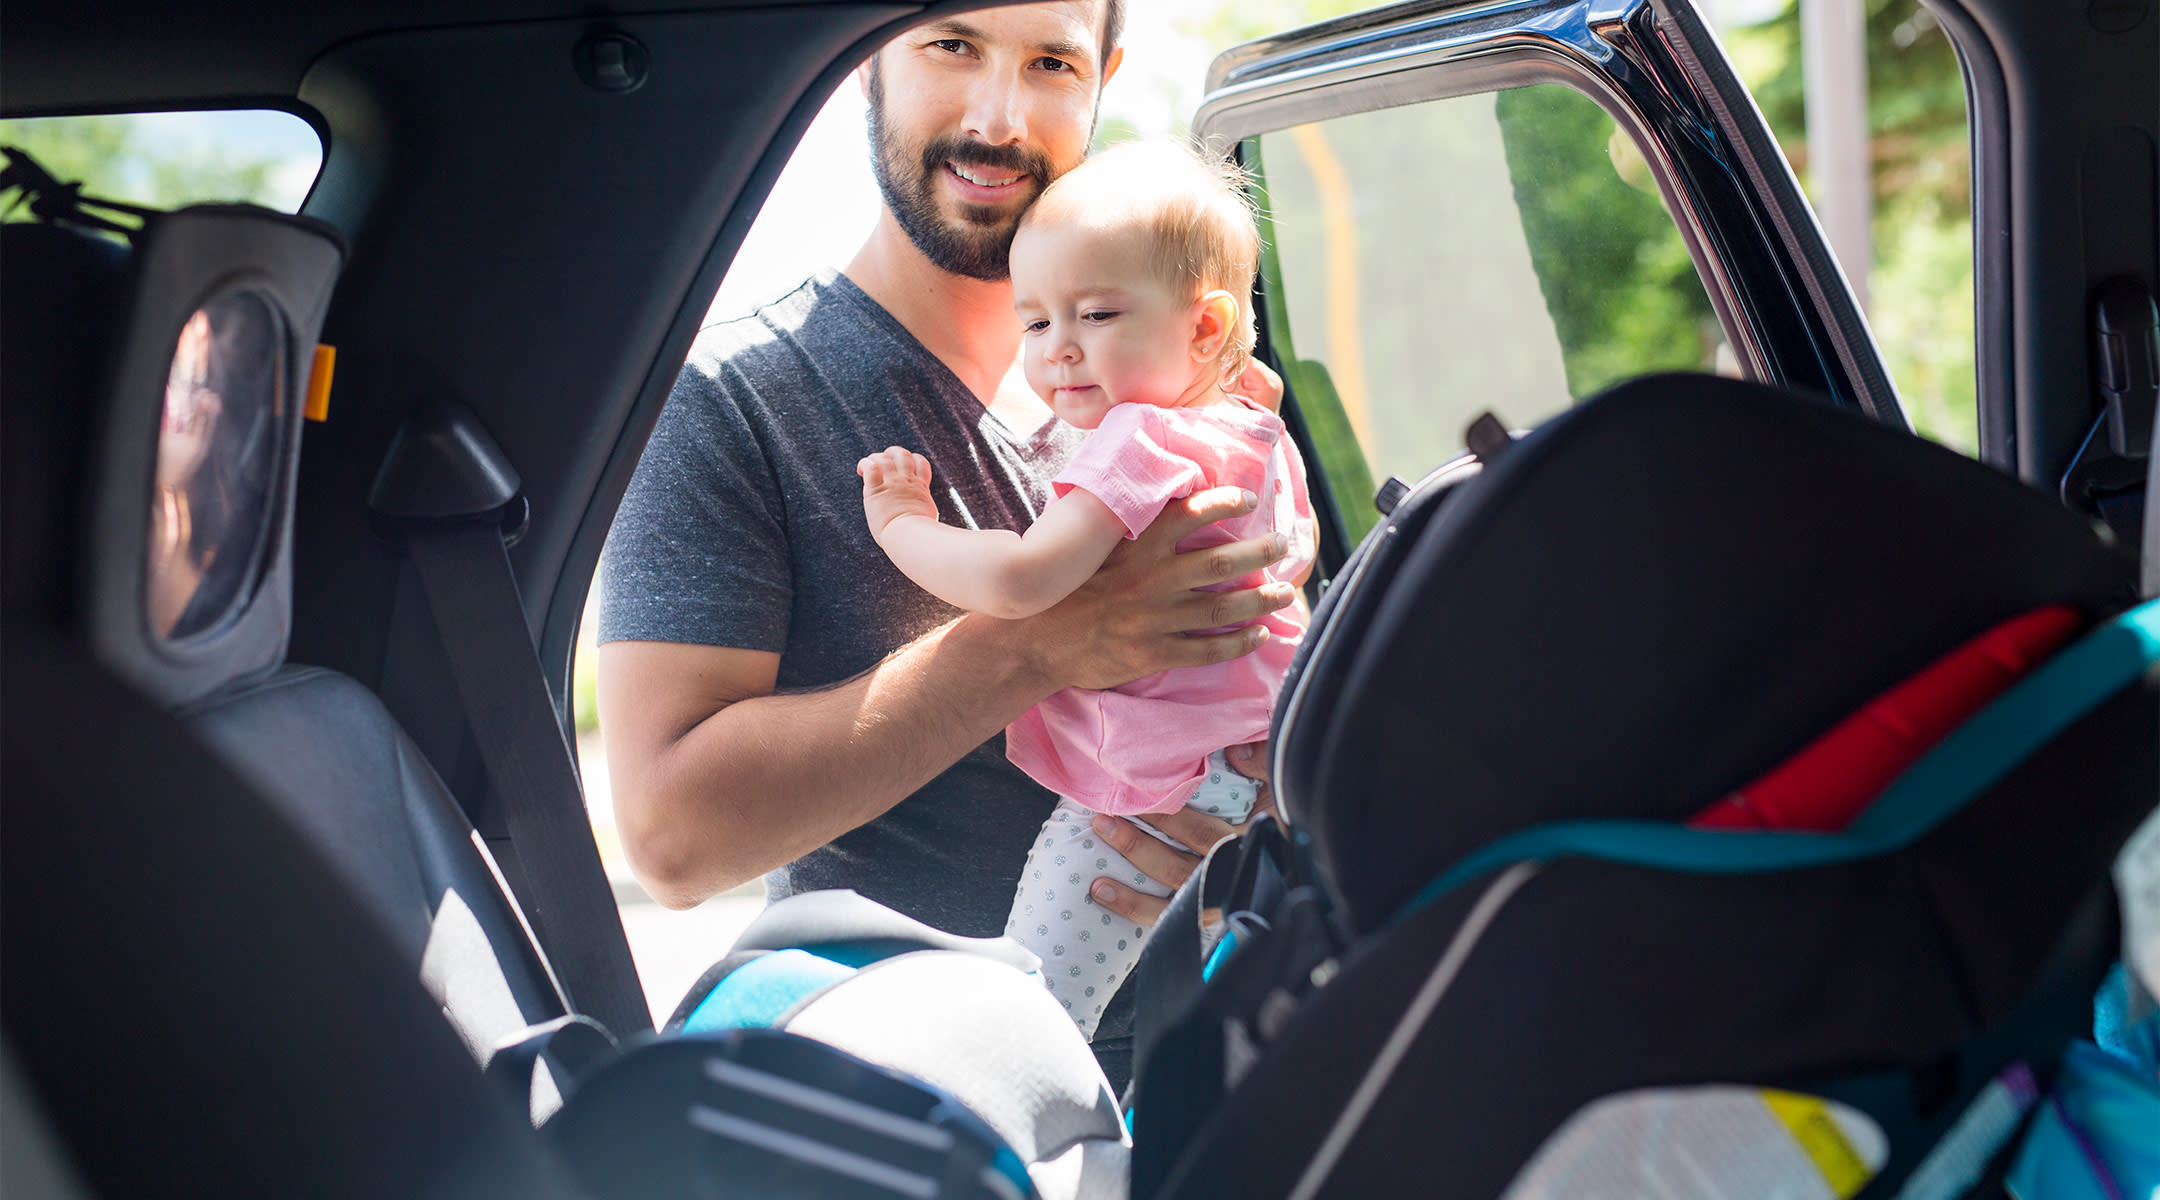 car seat safety, dad putting baby into her car seat